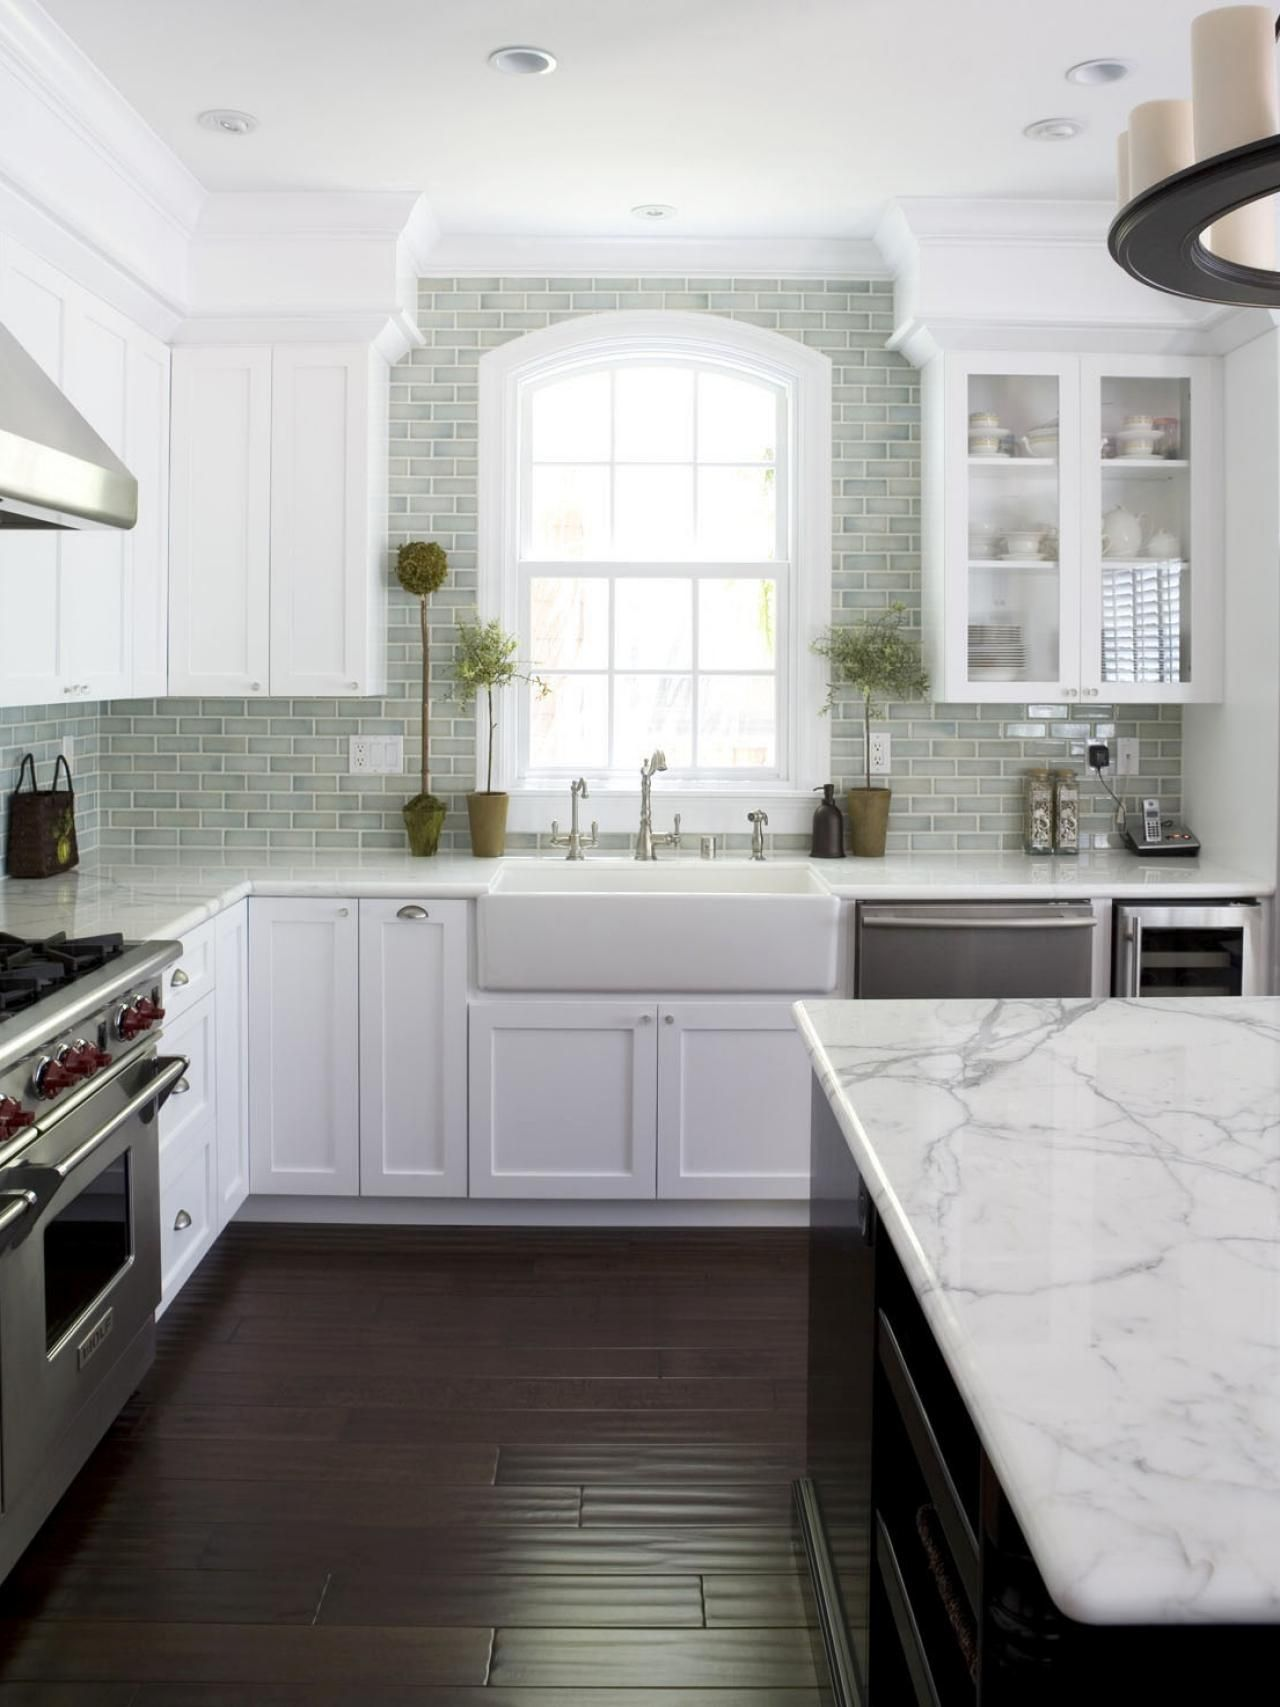 Our 40 Favorite White Kitchens Kitchen Ideas Design With Cabinets Islands Backsplashes Hgtv Kitchen Design Kitchen Renovation Kitchen Inspirations